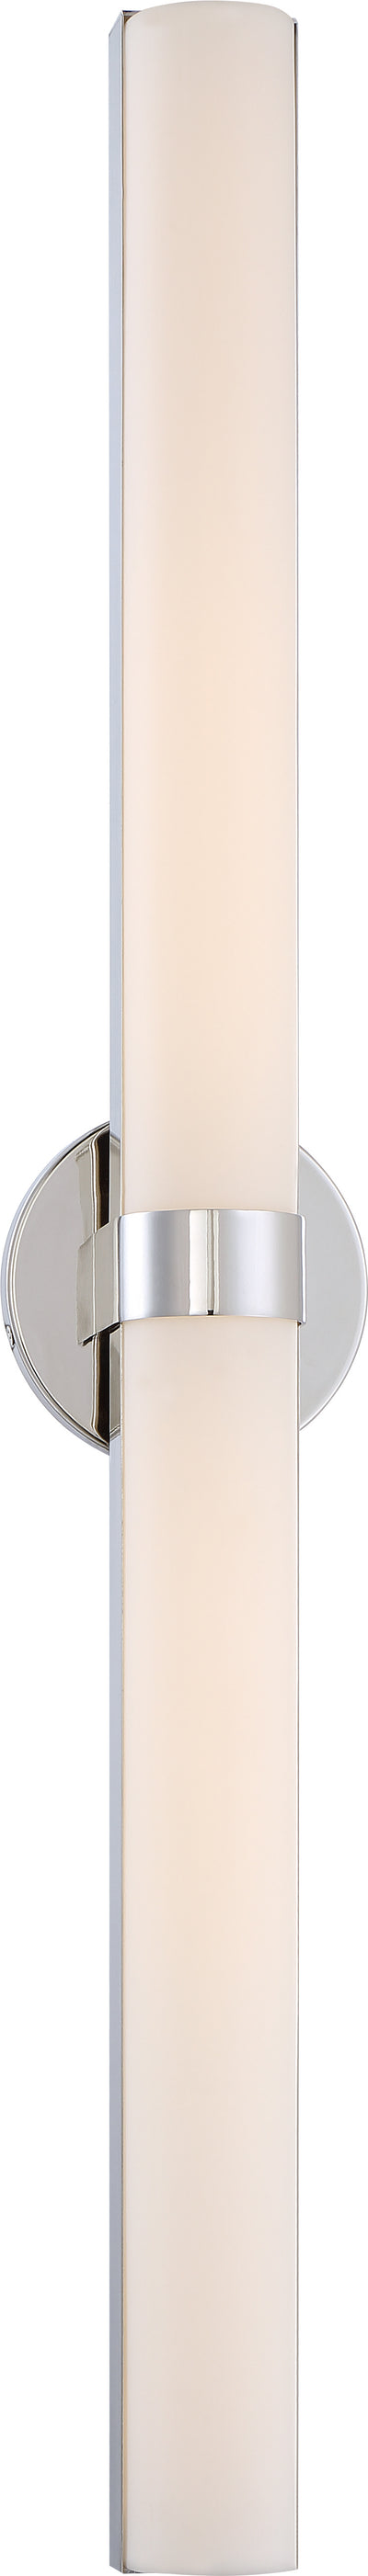 Nuvo Lighting 62/724 Bond Double 37 3/8 Inch LED Vanity with White Acrylic Lens